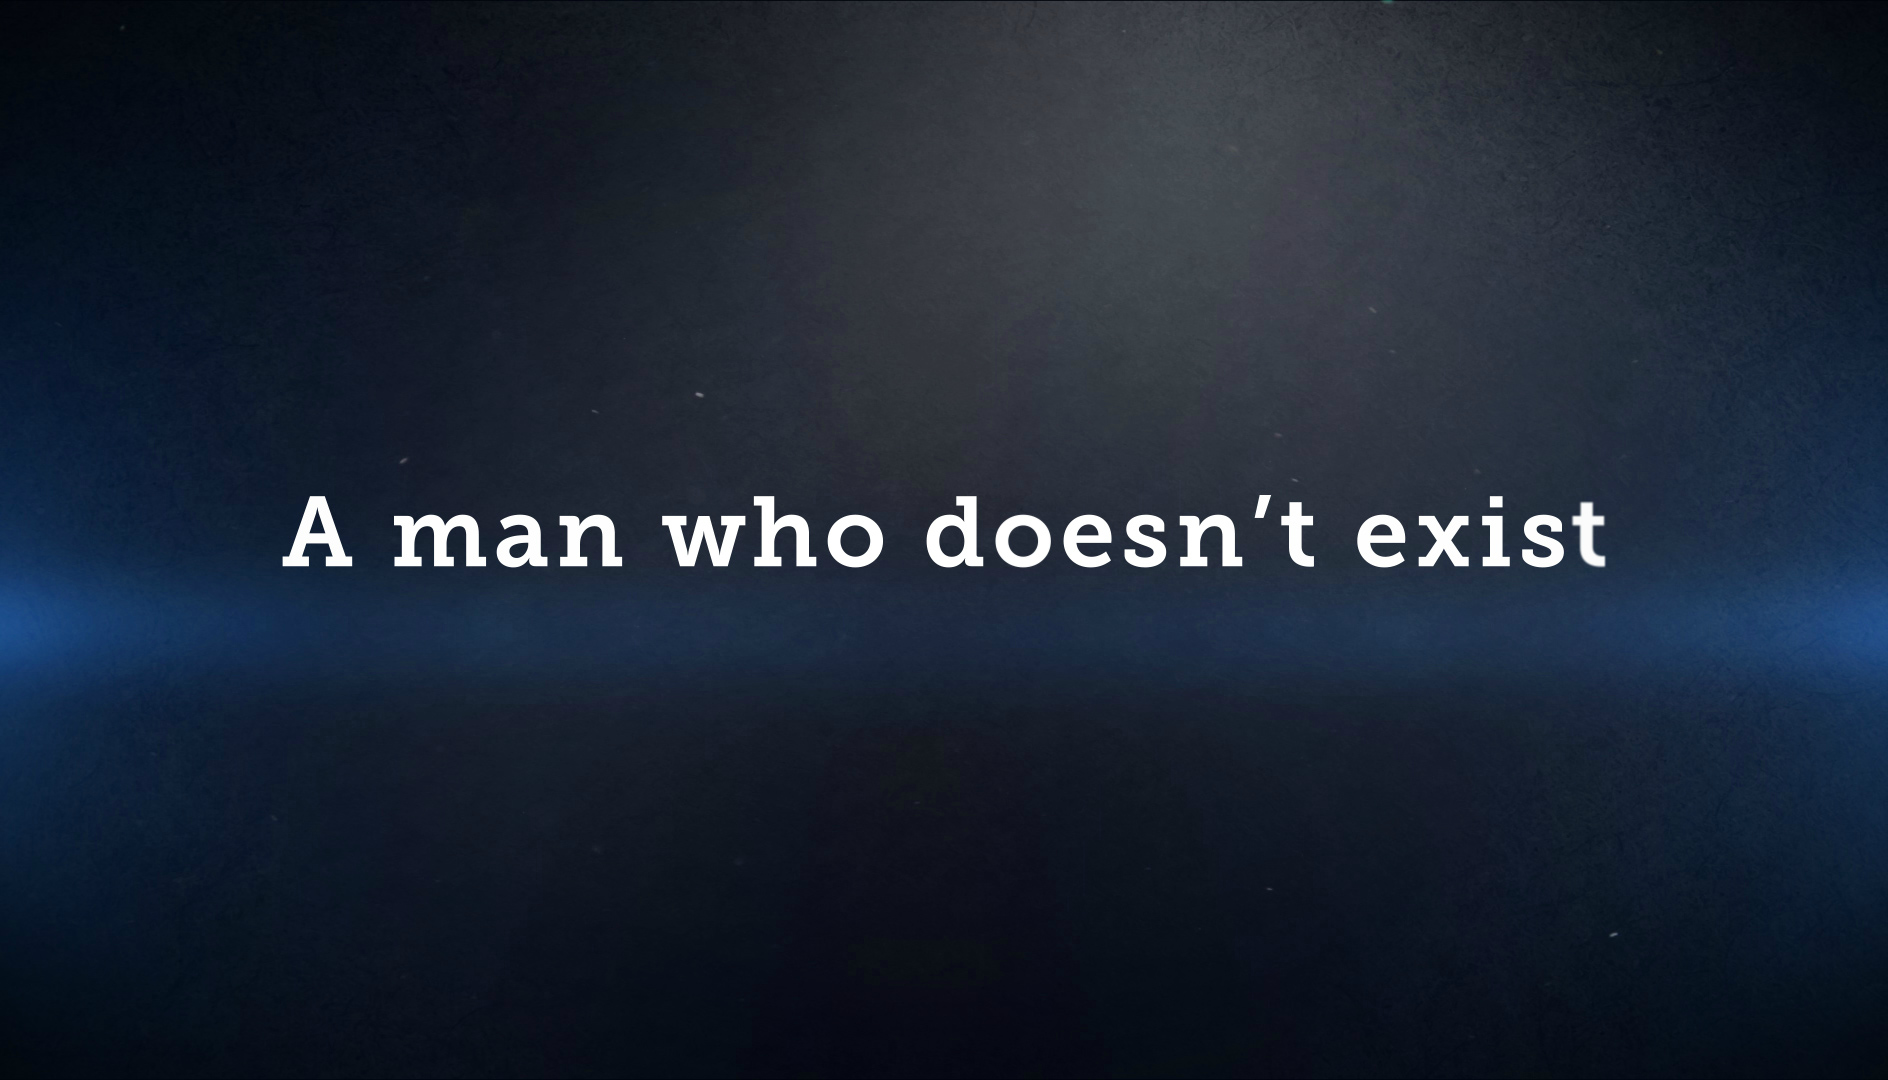 A man who doesn't exist